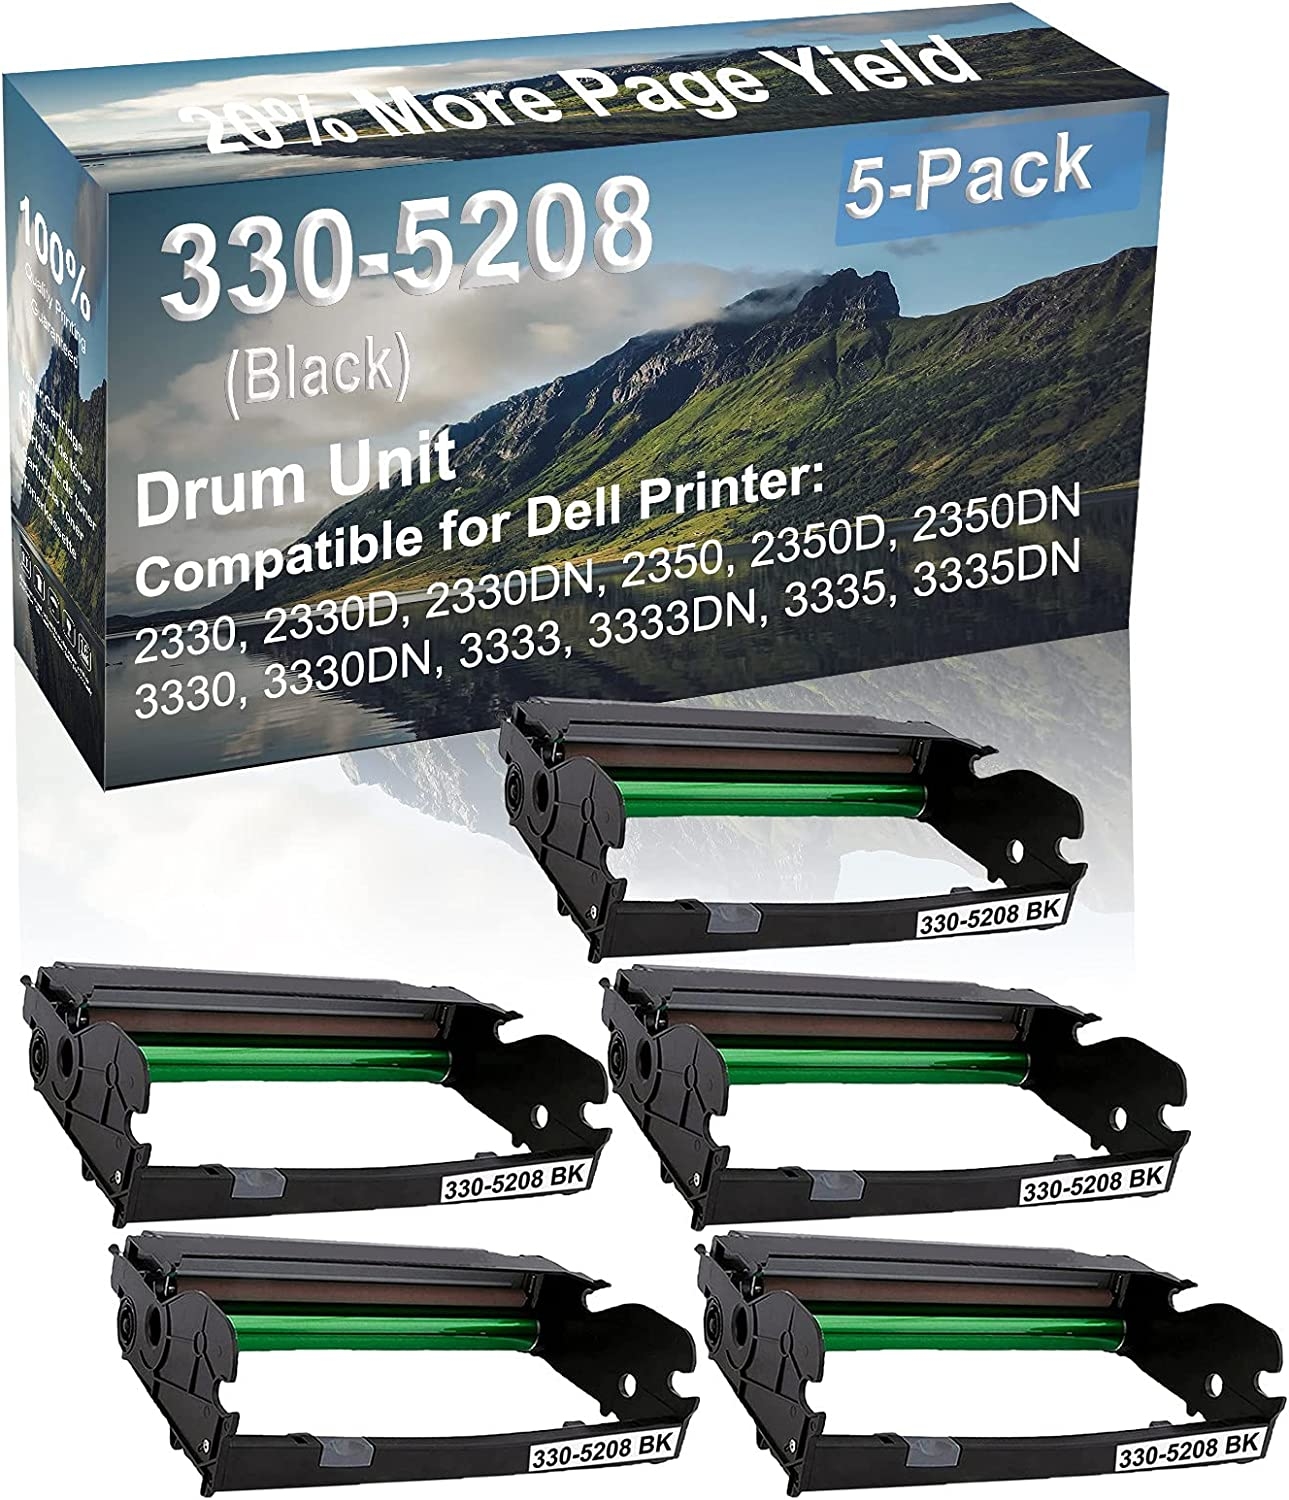 5-Pack Compatible Drum Unit (Black) Replacement for Dell 330-5208 Drum Kit use for Dell 3333, 3333DN, 3335, 3335DN Printer